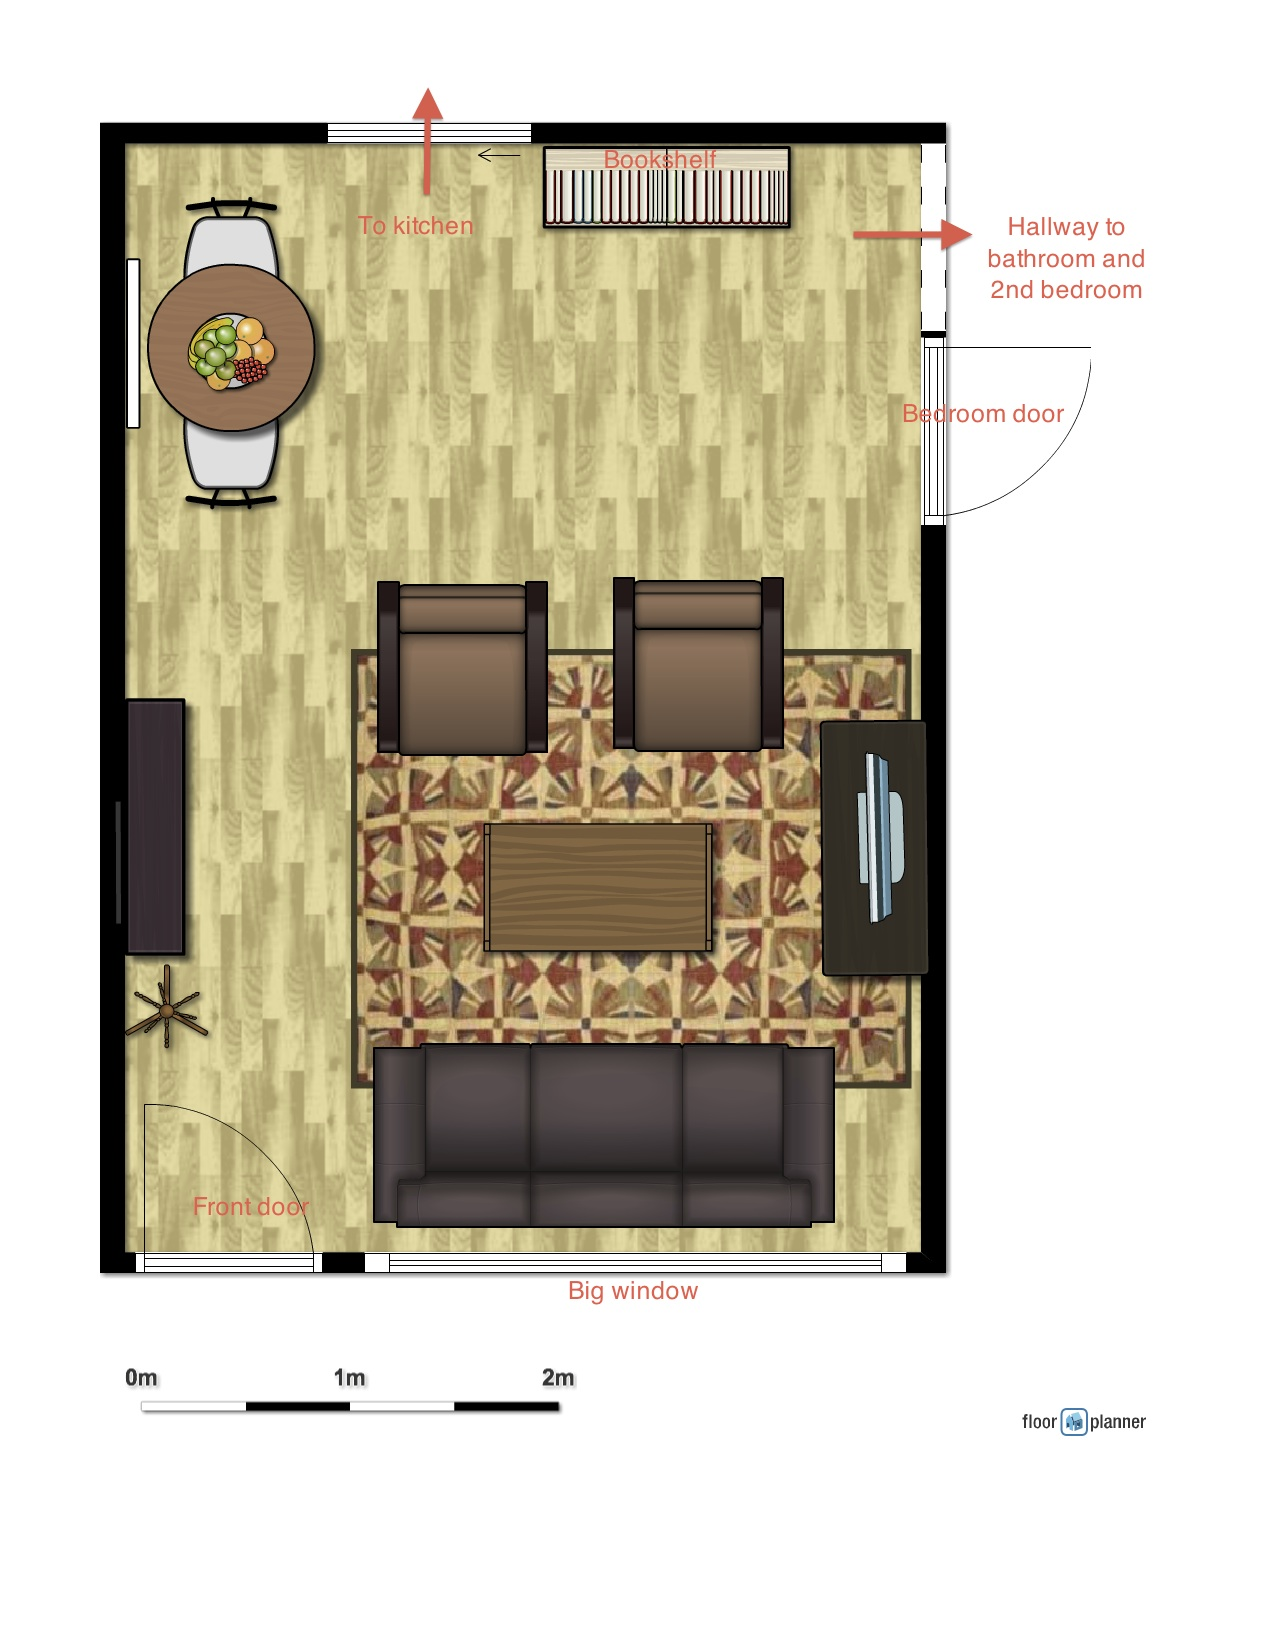 Open floorplan challenges hip house girl Plan my room layout